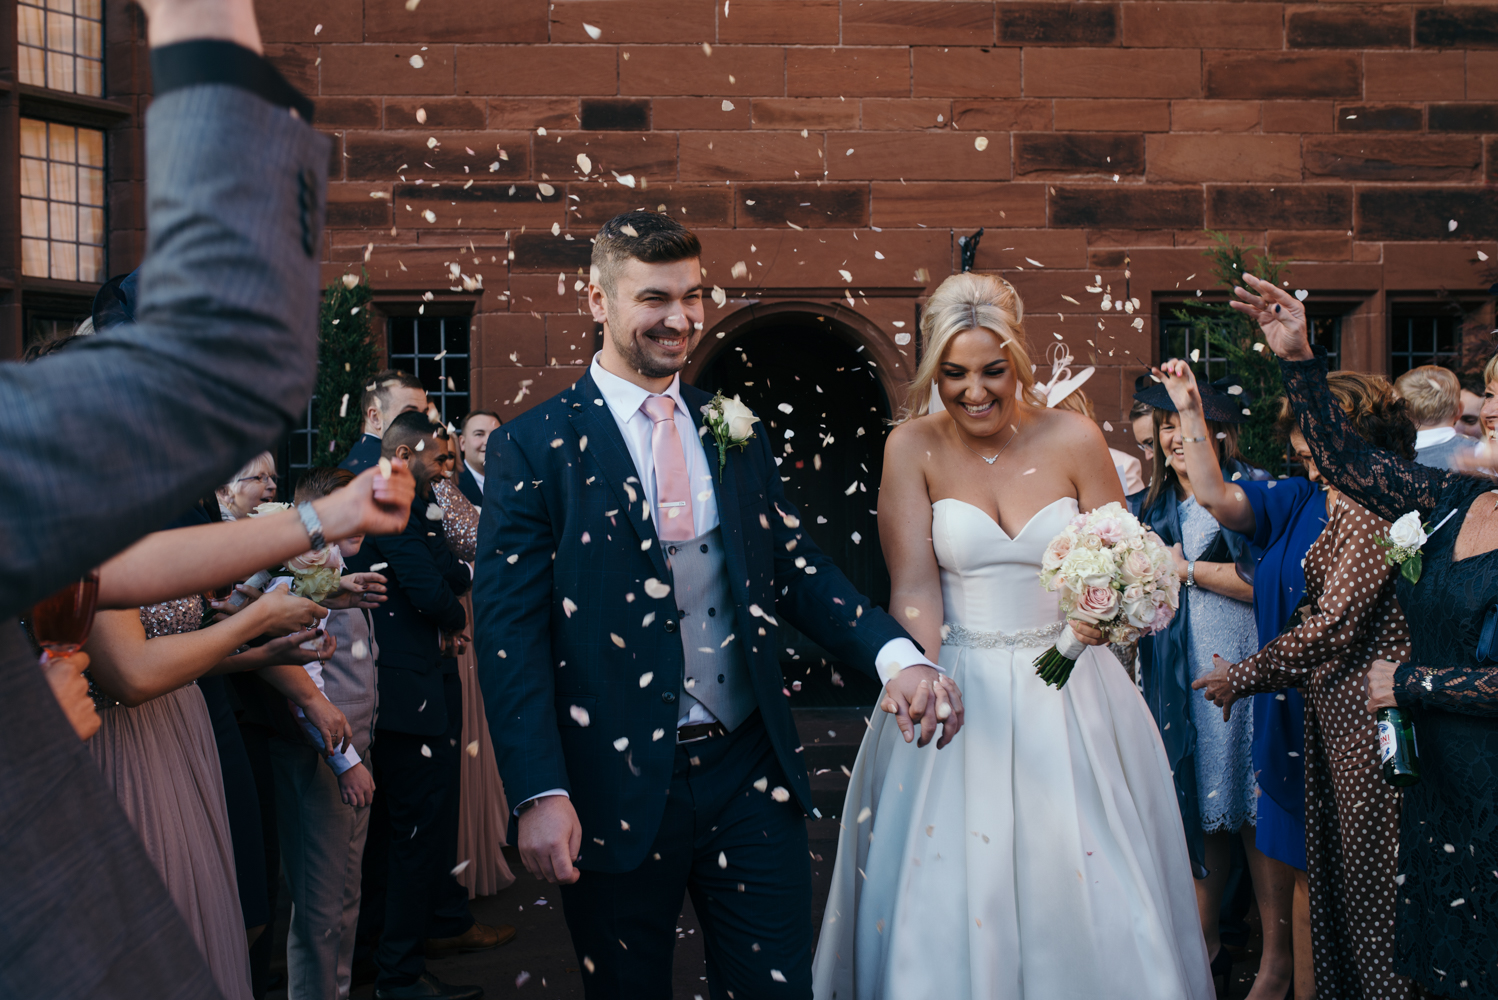 The bride and groom during the confetti shower